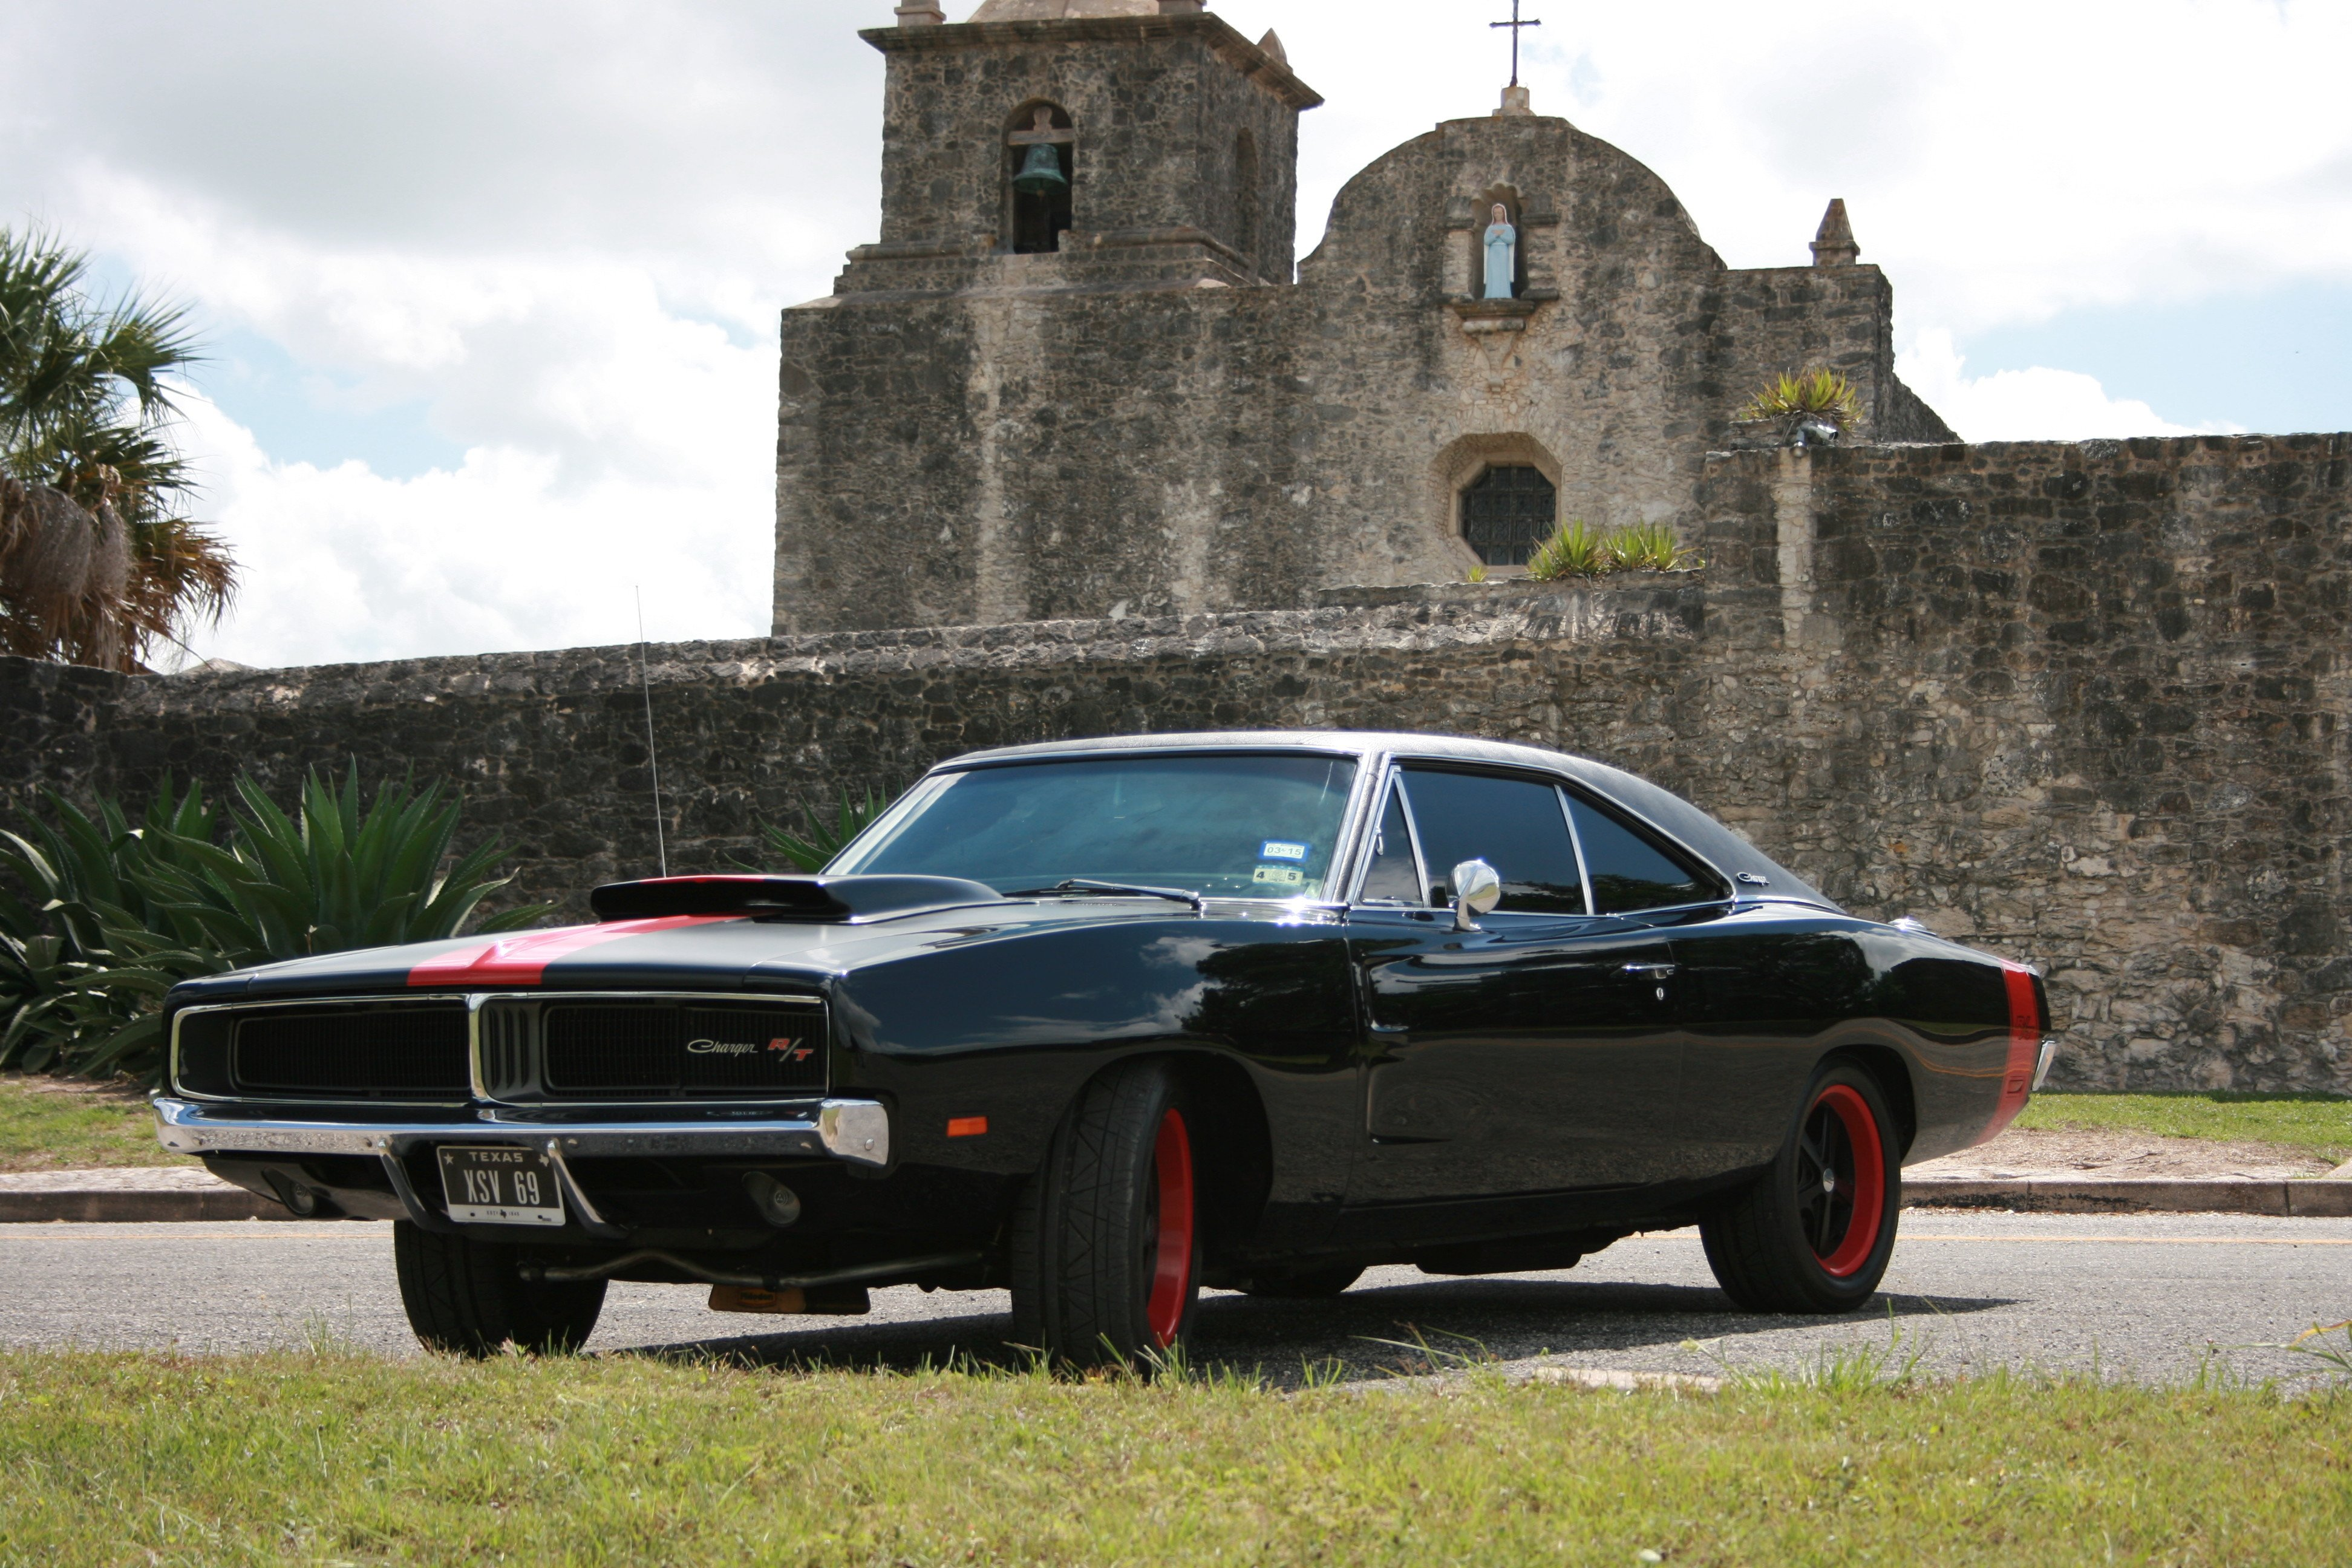 Dodge Charger Rt For Sale >> 1969 Dodge Charger Classics for Sale - Classics on Autotrader